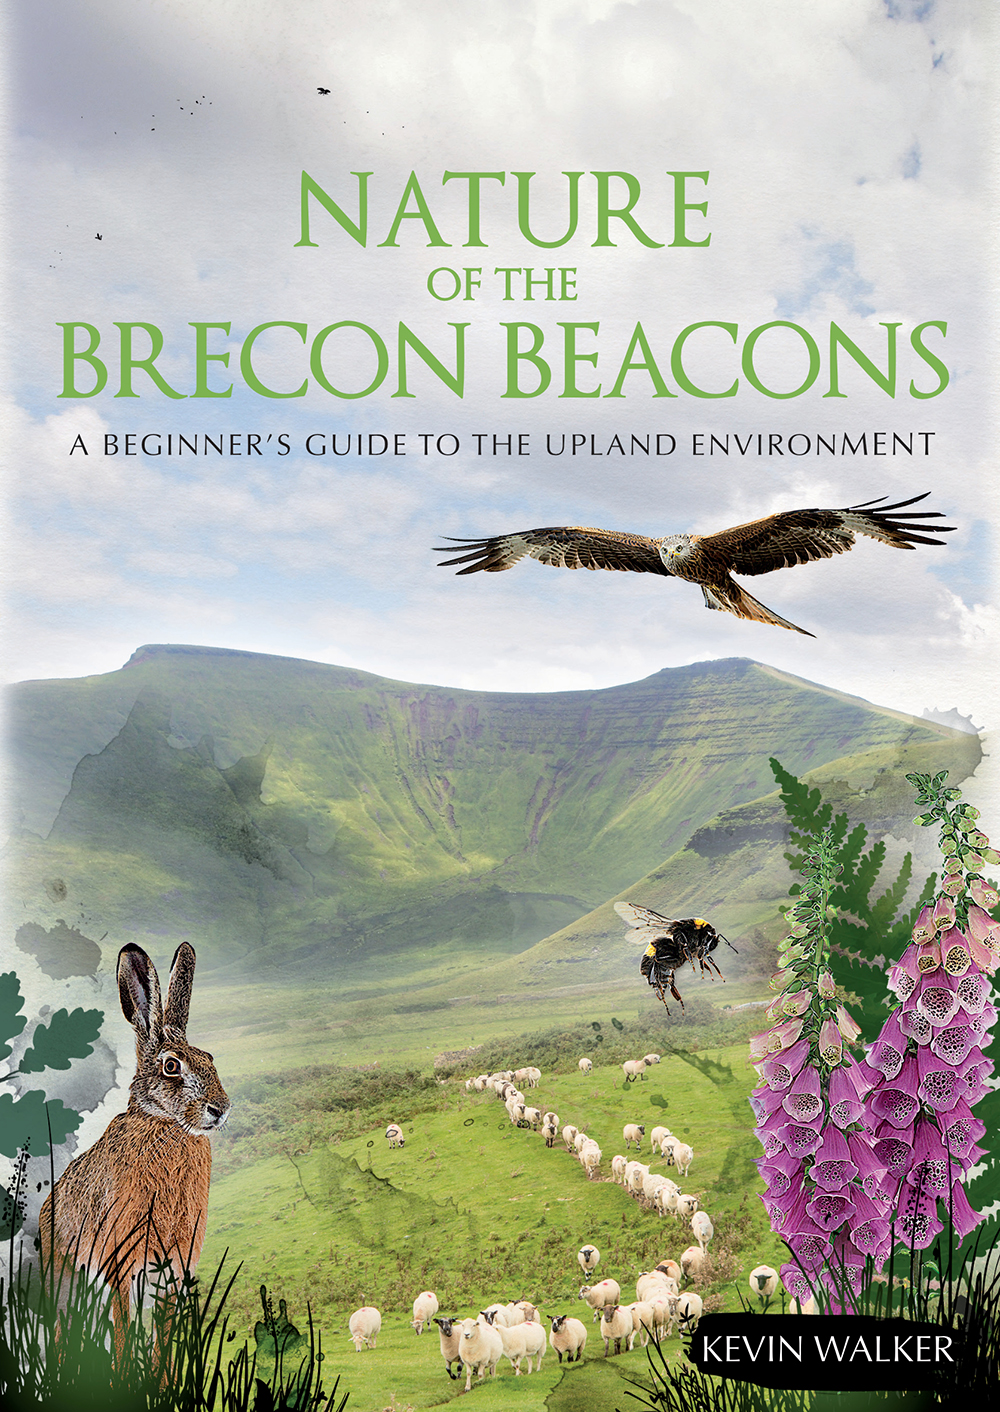 The Nature of the Brecon Beacons